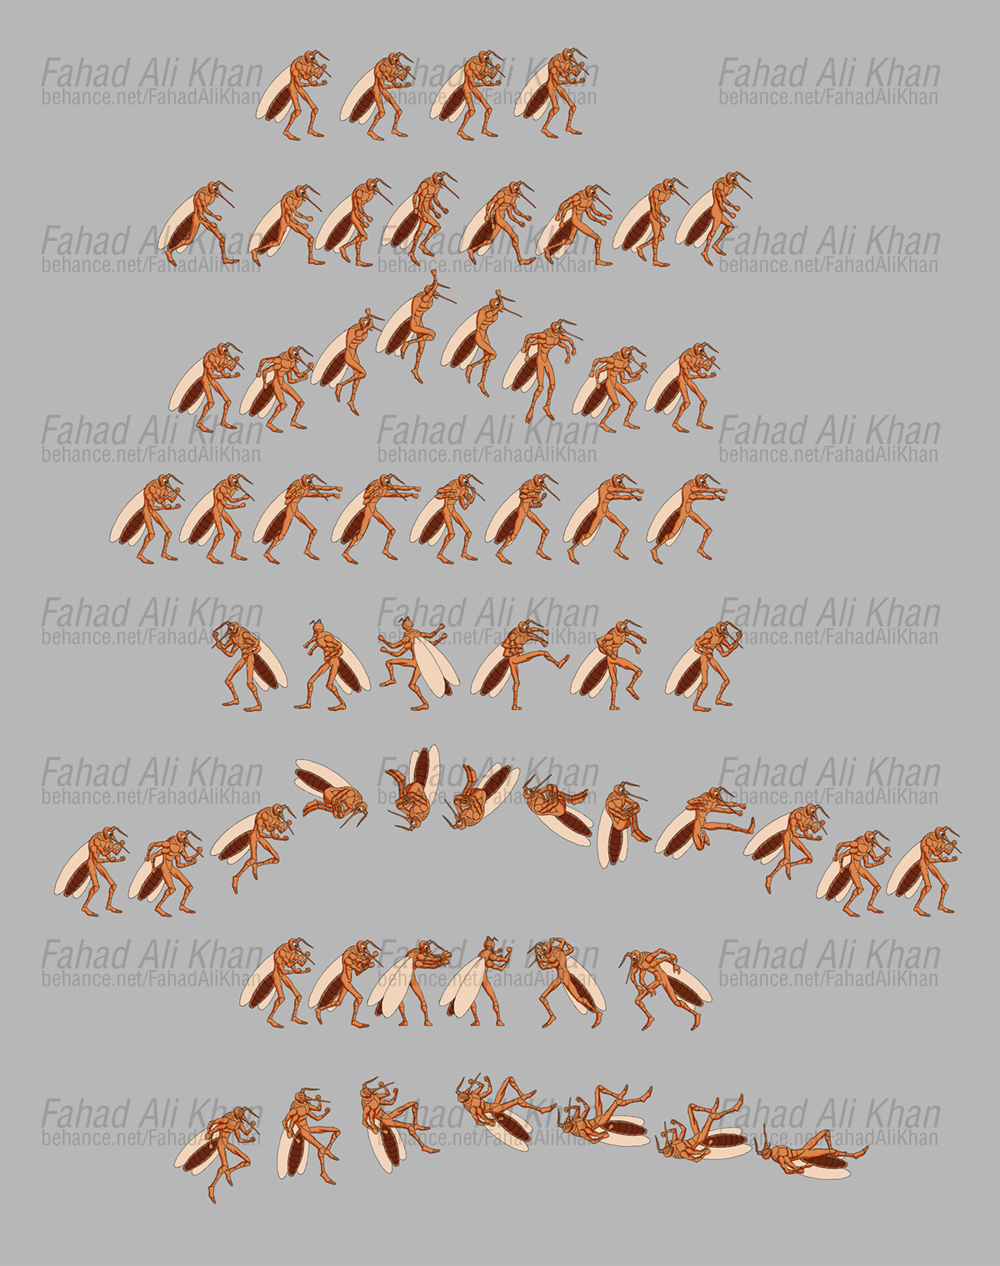 Animation-sprite-02-by-Fahad-Ali-Khan-Animex-Studios.png